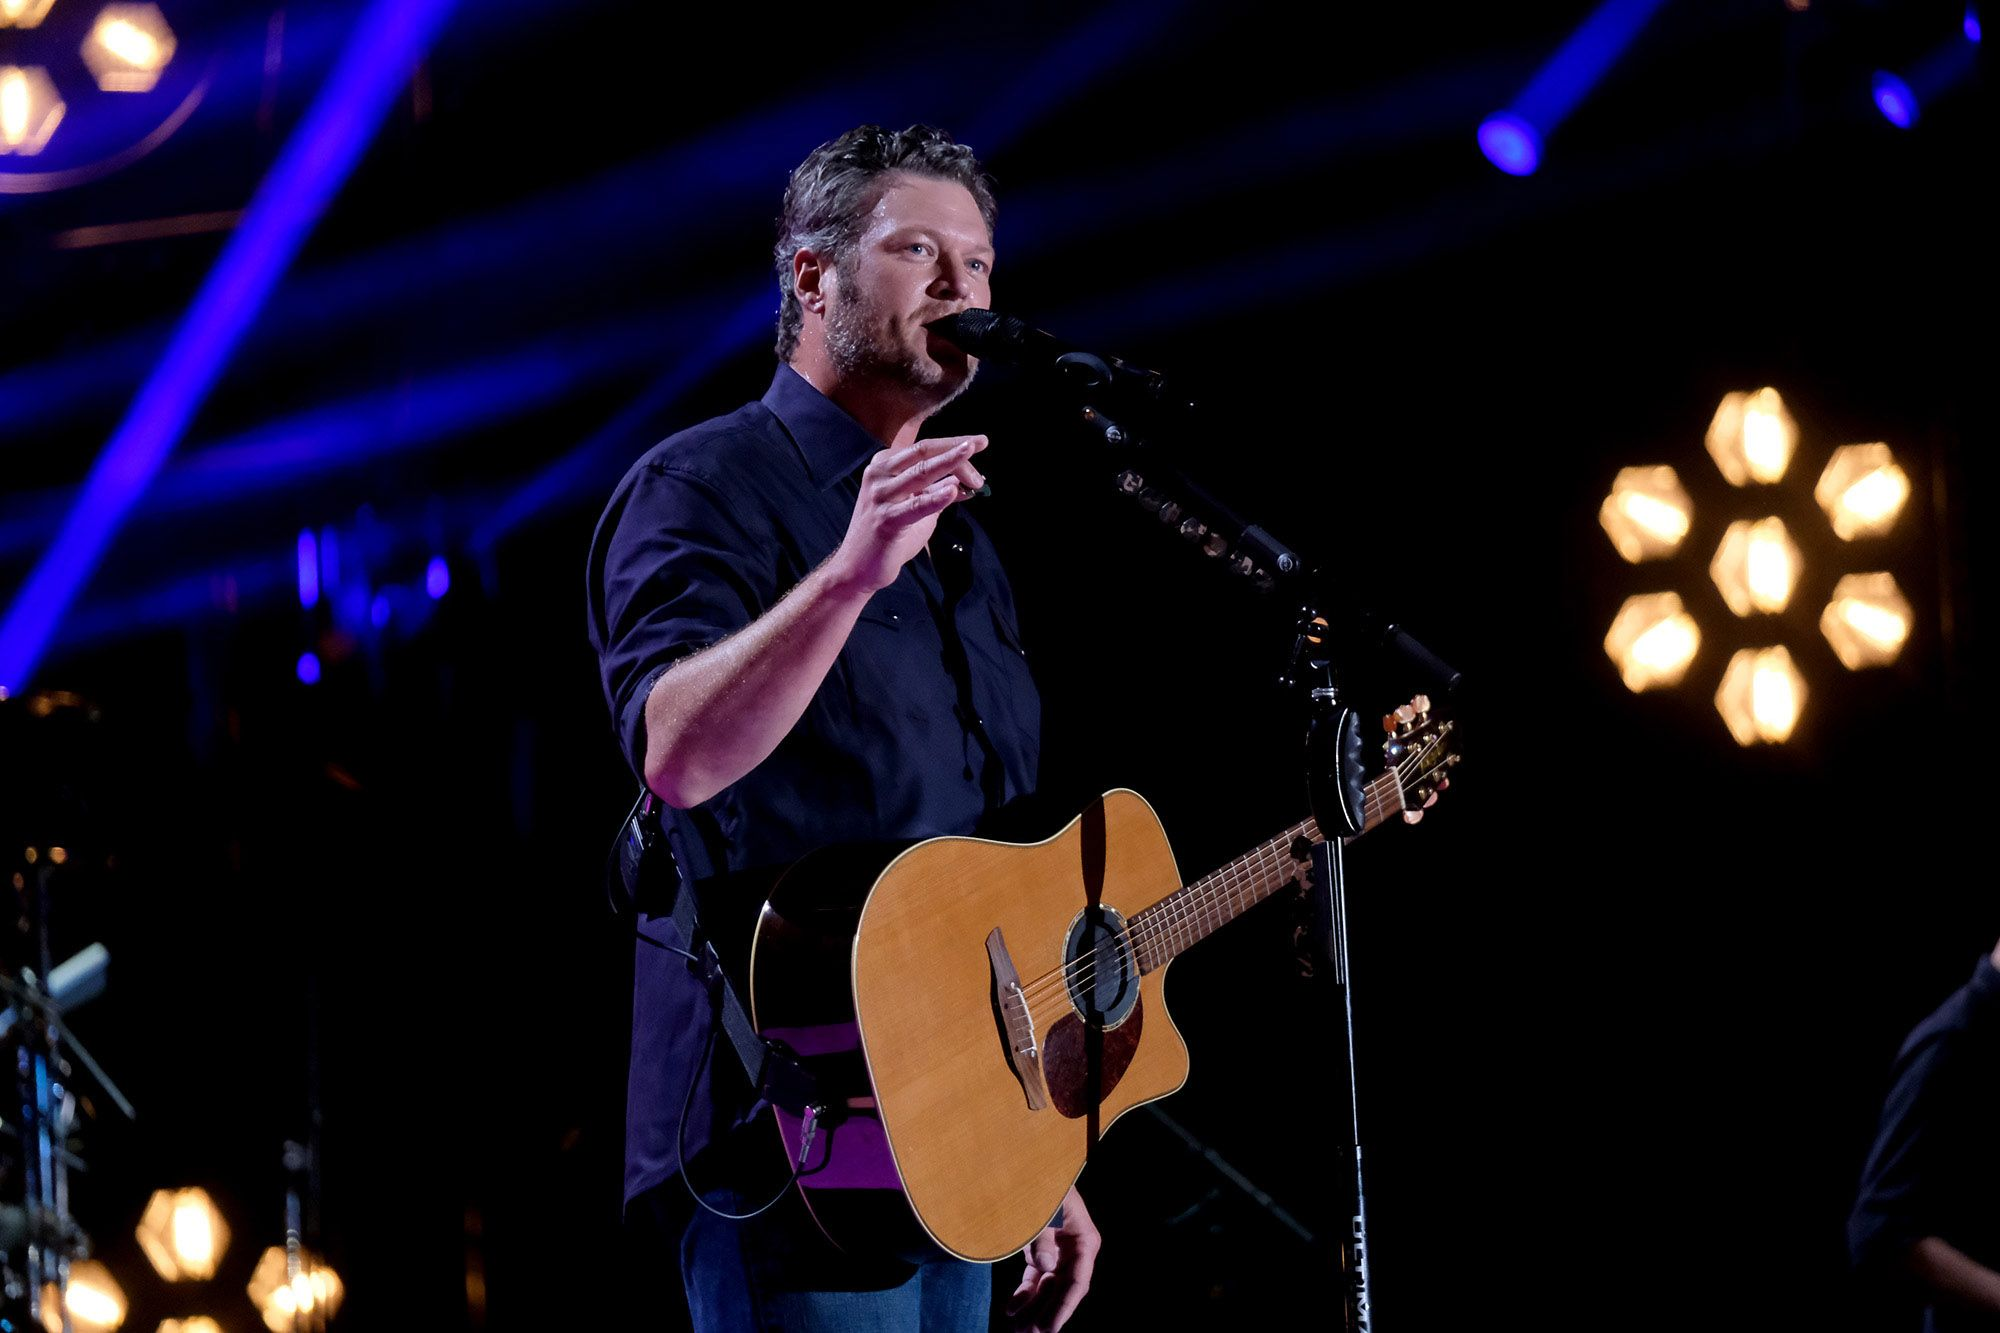 Blake Shelton Performs 'Every Time I Hear That Song' at CMA